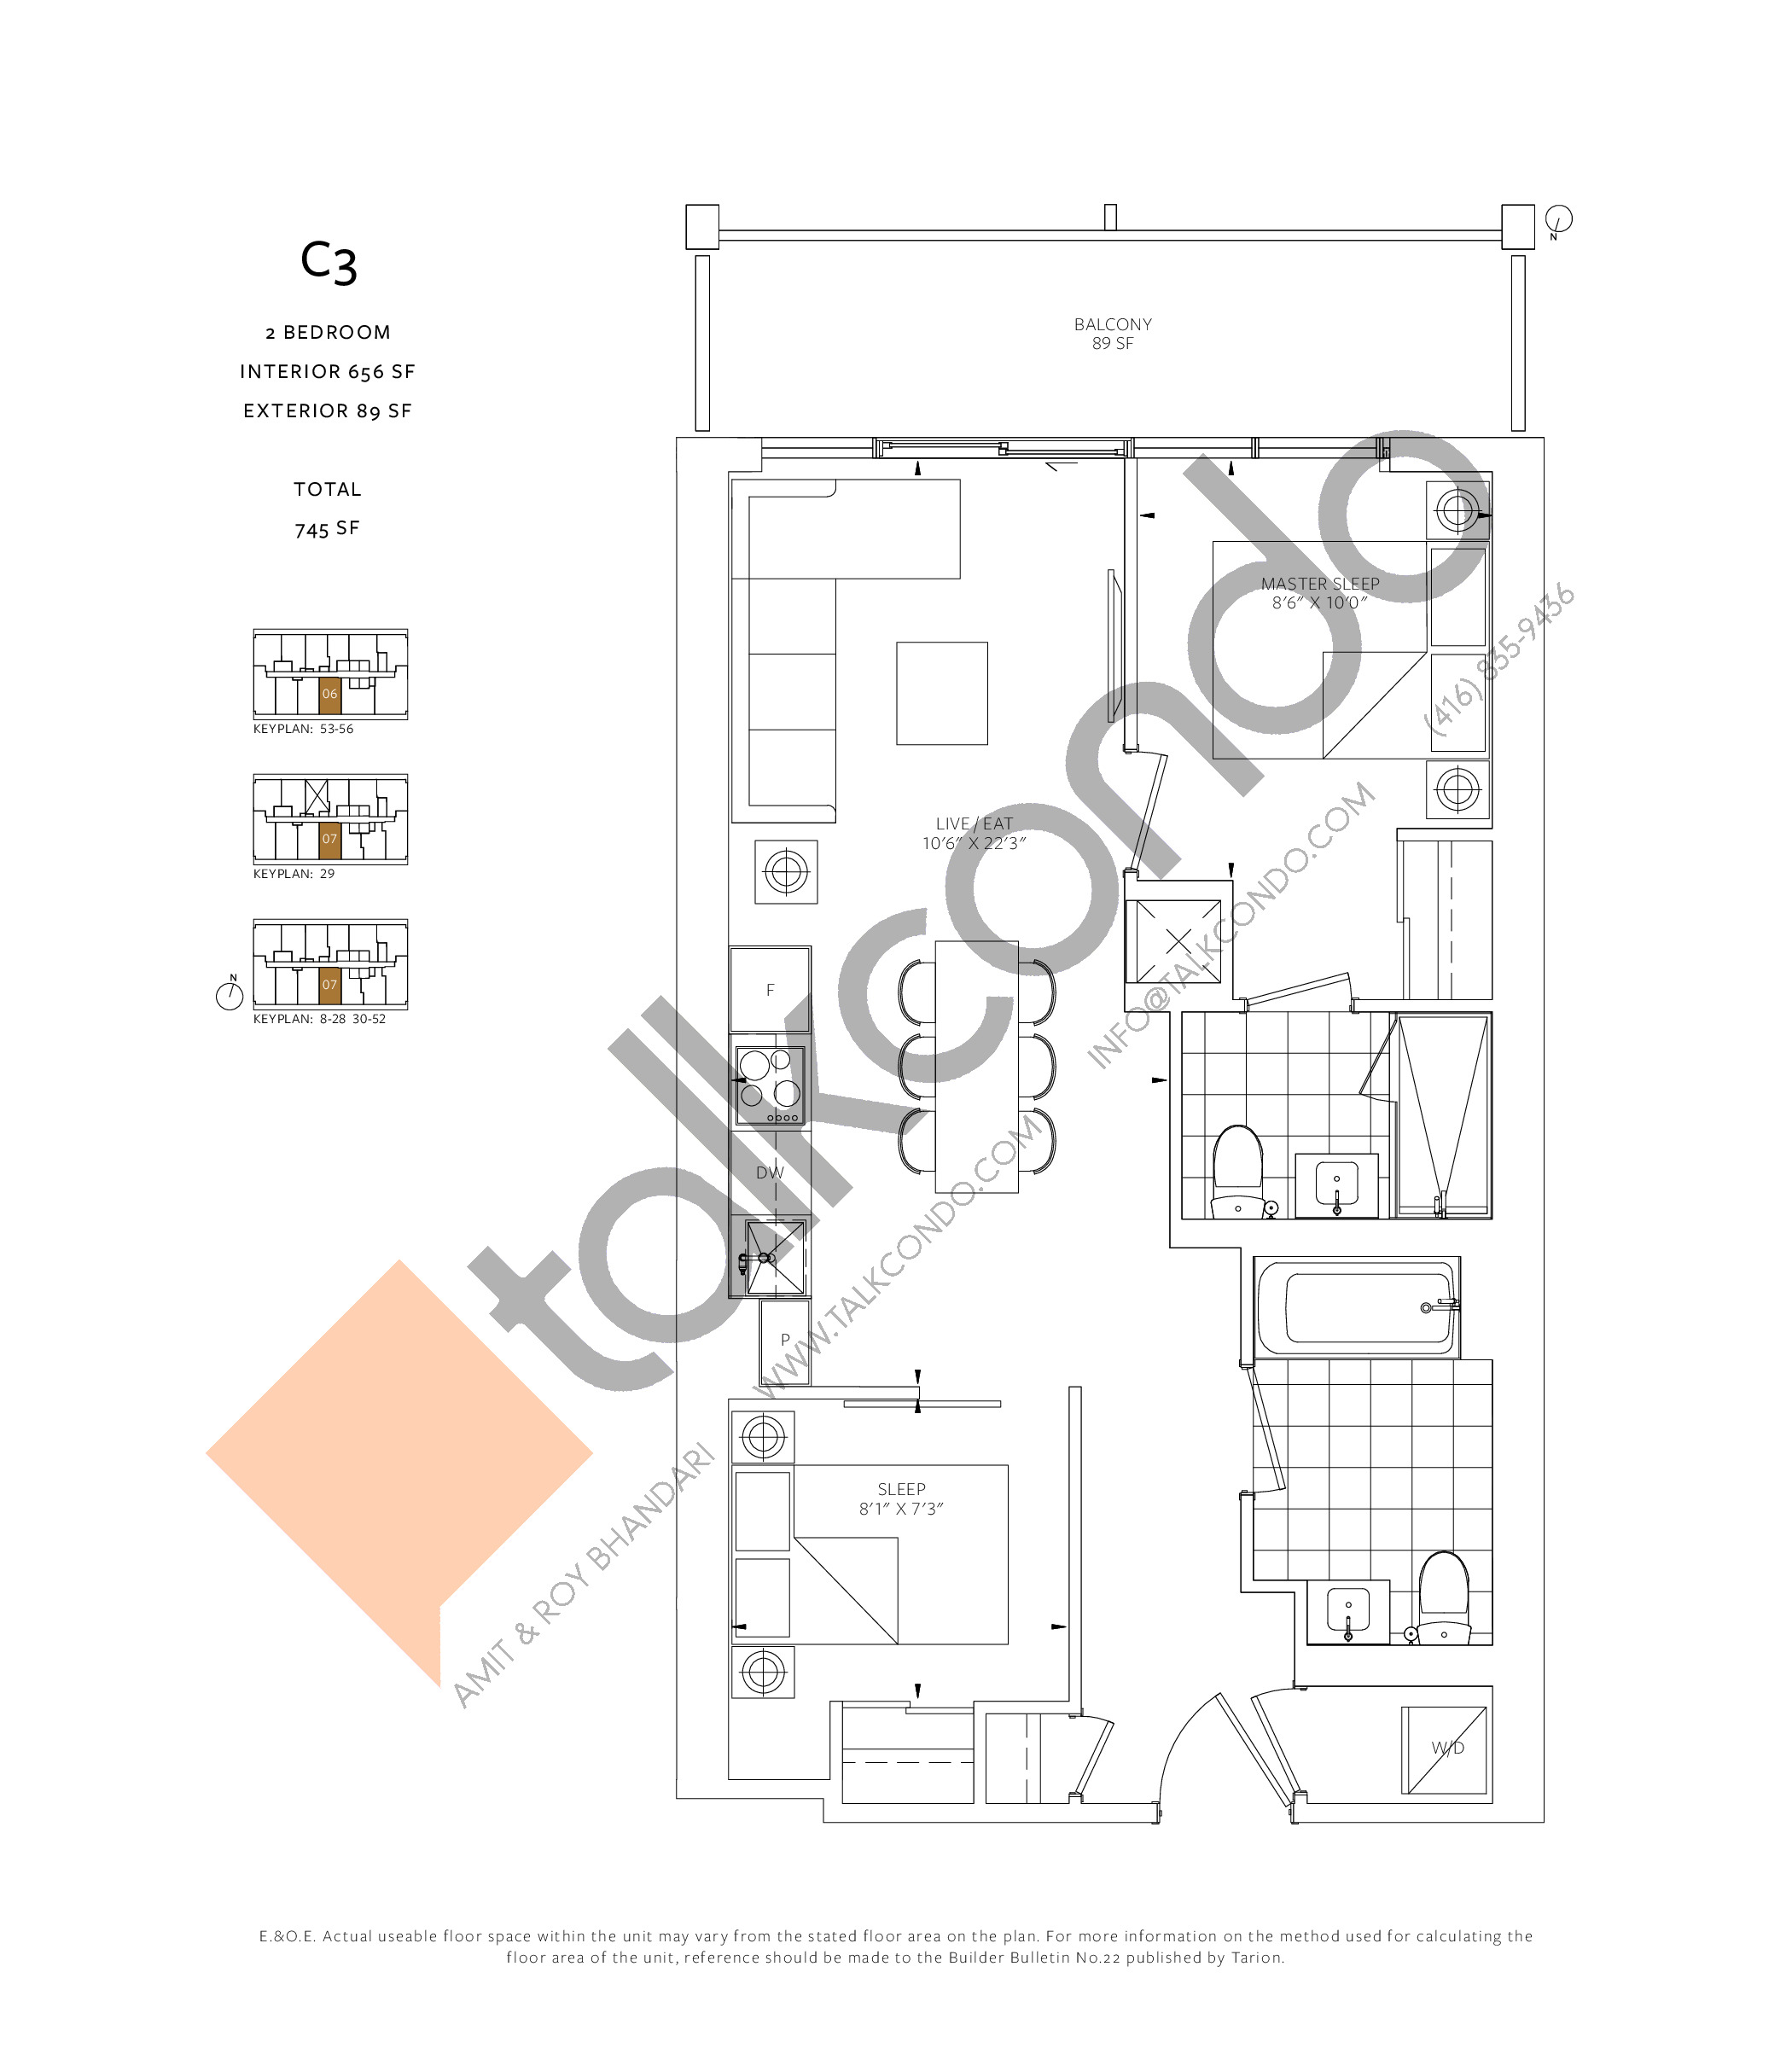 C3 Floor Plan at 88 Queen Condos - Phase 2 - 656 sq.ft